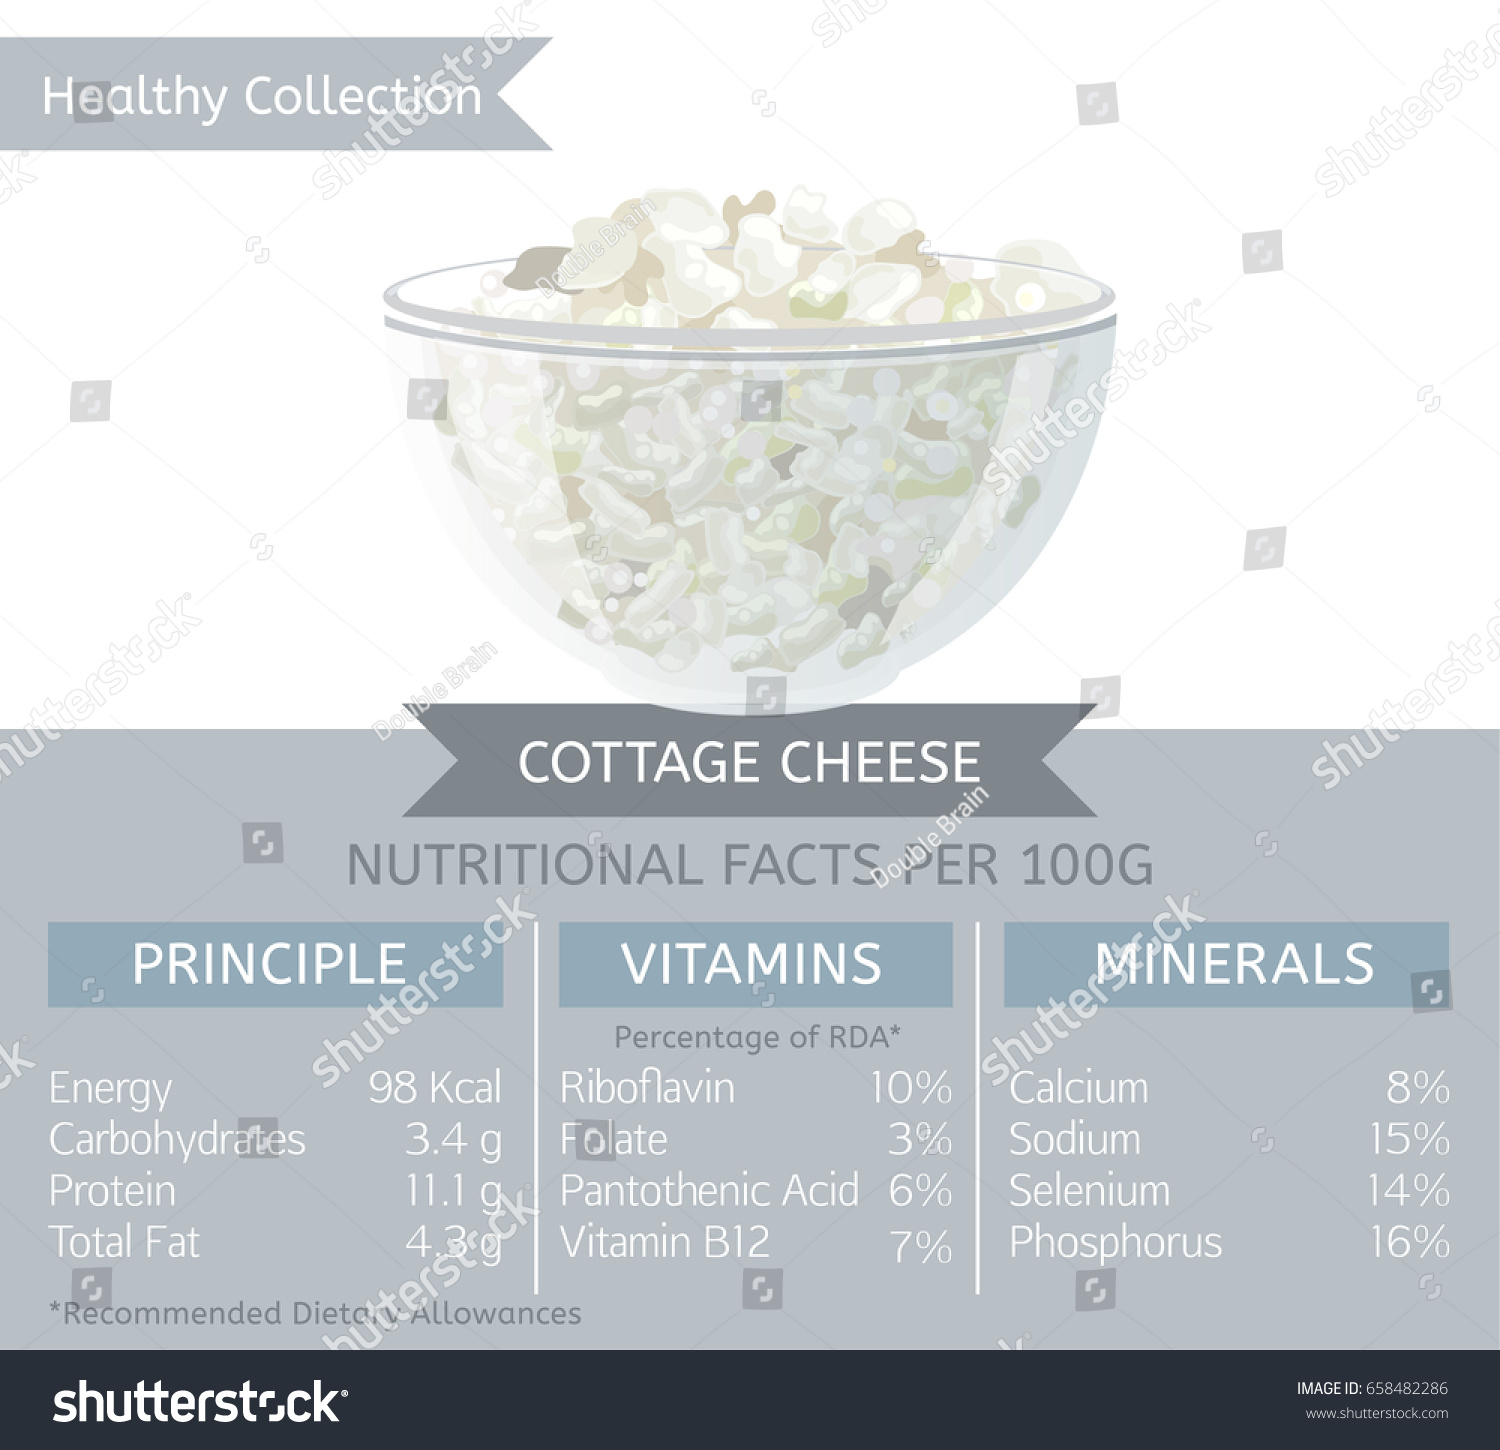 Amazing Cottage Cheese Health Benefits. Vector Illustration With Useful Nutritional  Facts. Essential Vitamins And Minerals